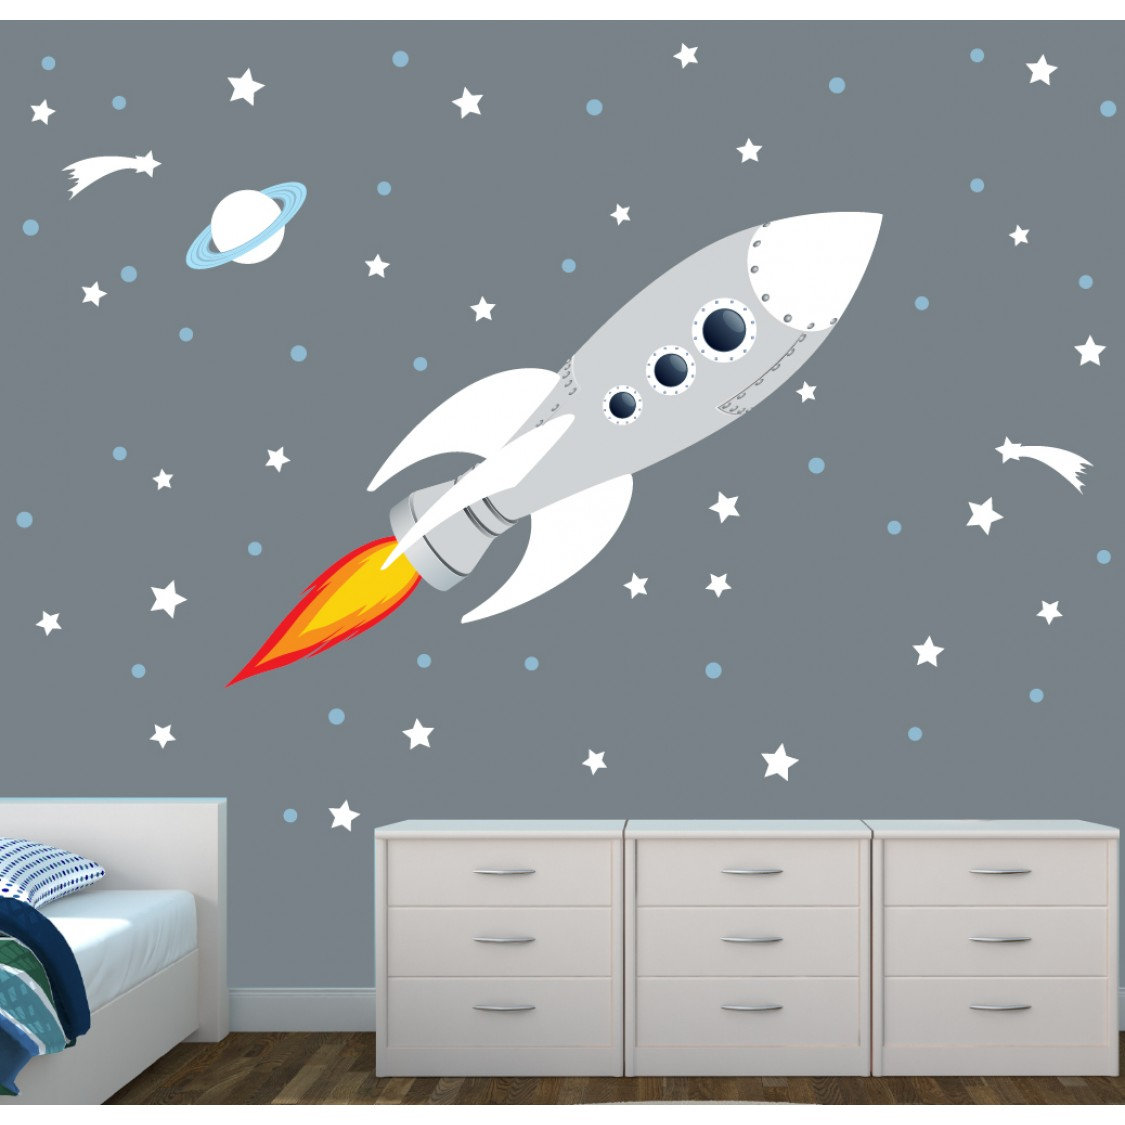 Space wall decals roselawnlutheran for Outer space vinyl wall decals